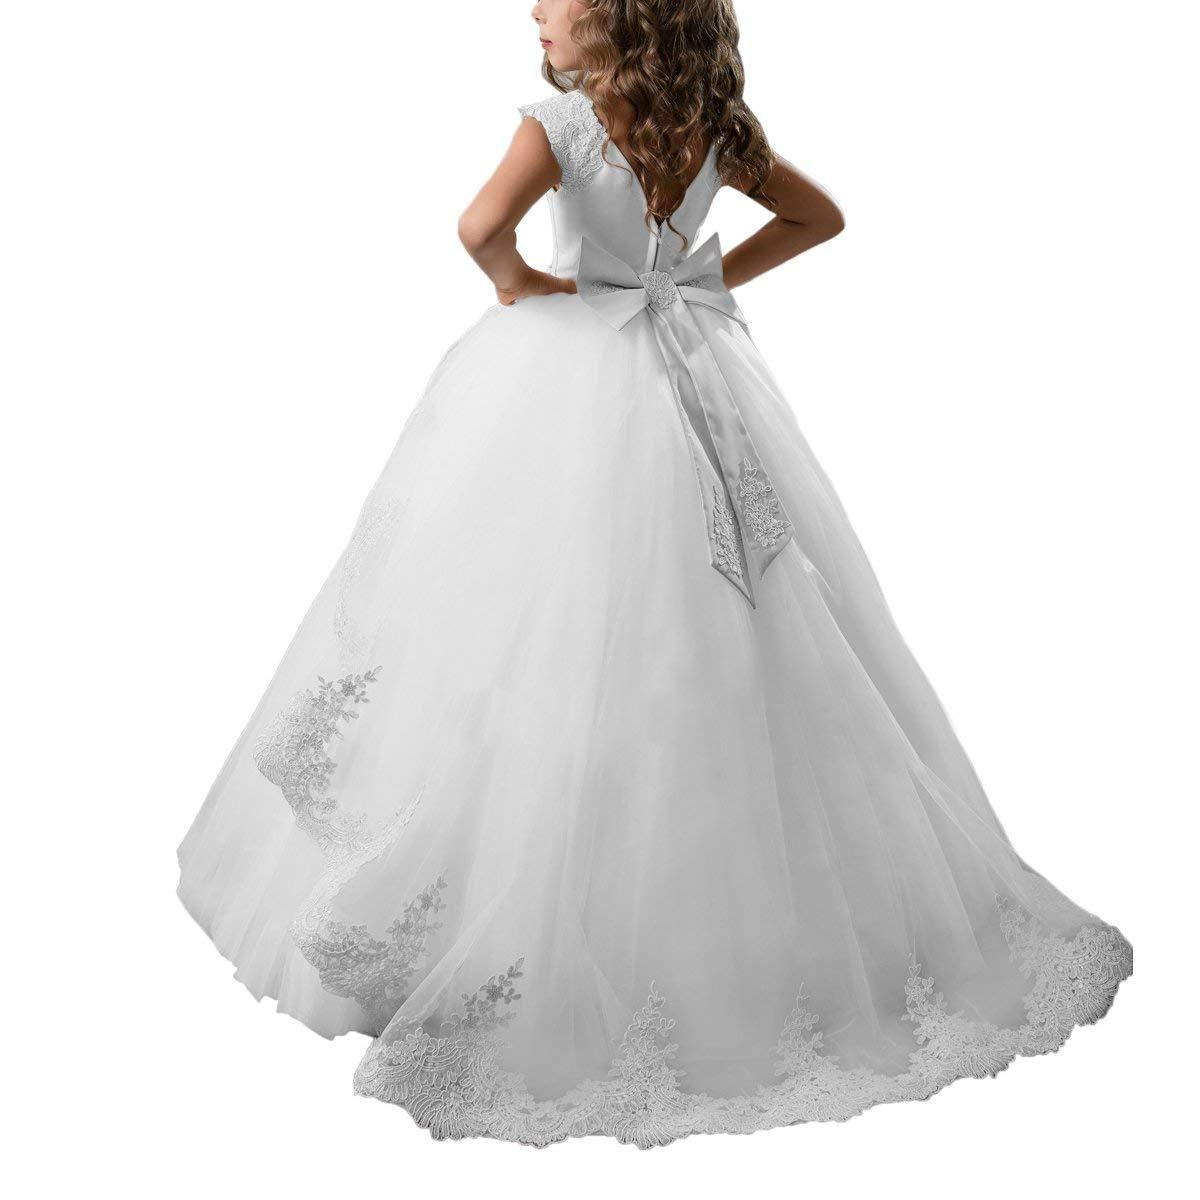 db604bd45 Flower Girl Dress Fancy Tulle Satin Lace Cap Sleeves Pageant Girls Ball Gown  White Ivory For Wedding Formal Occasion Sashes For Flower Girl Dresses  Taffeta ...